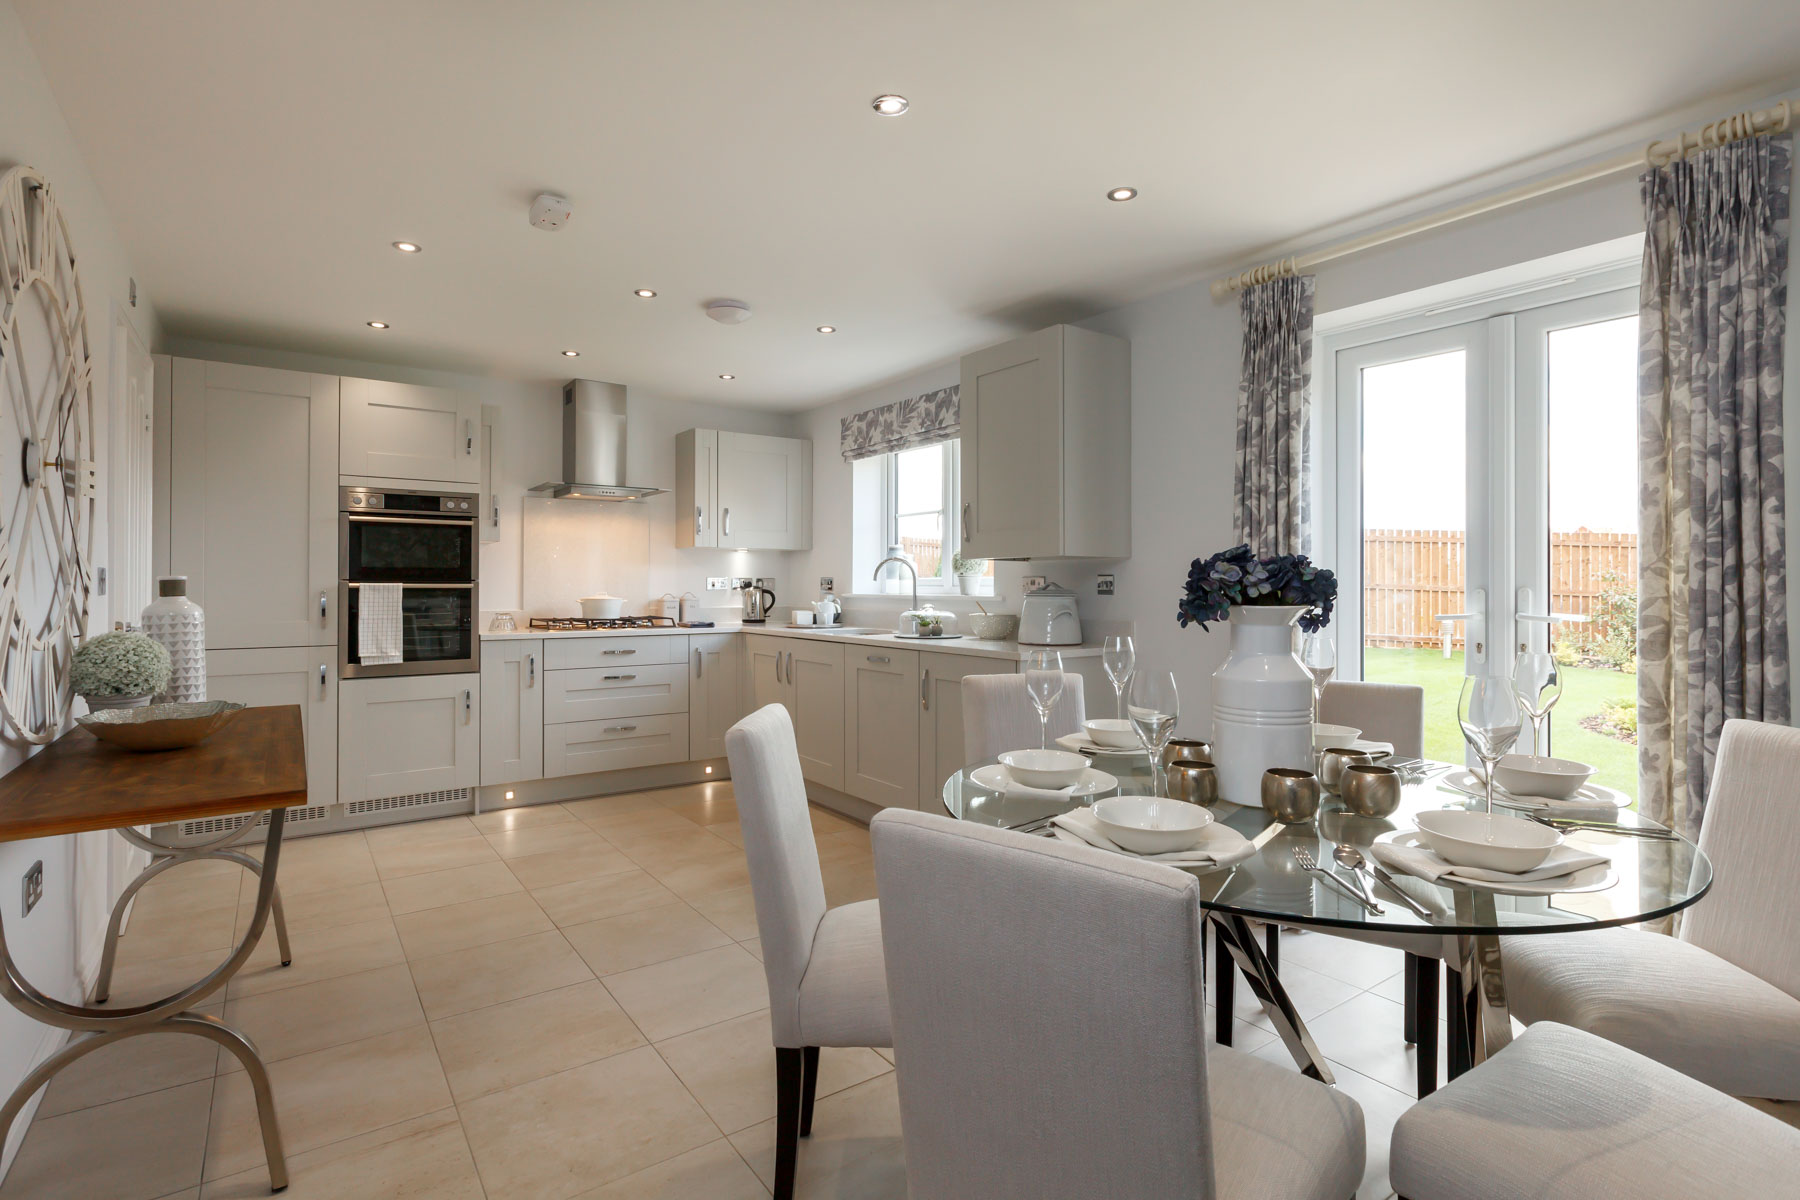 TW Exeter - Mountbatten Mews - Midford example kitchen 2